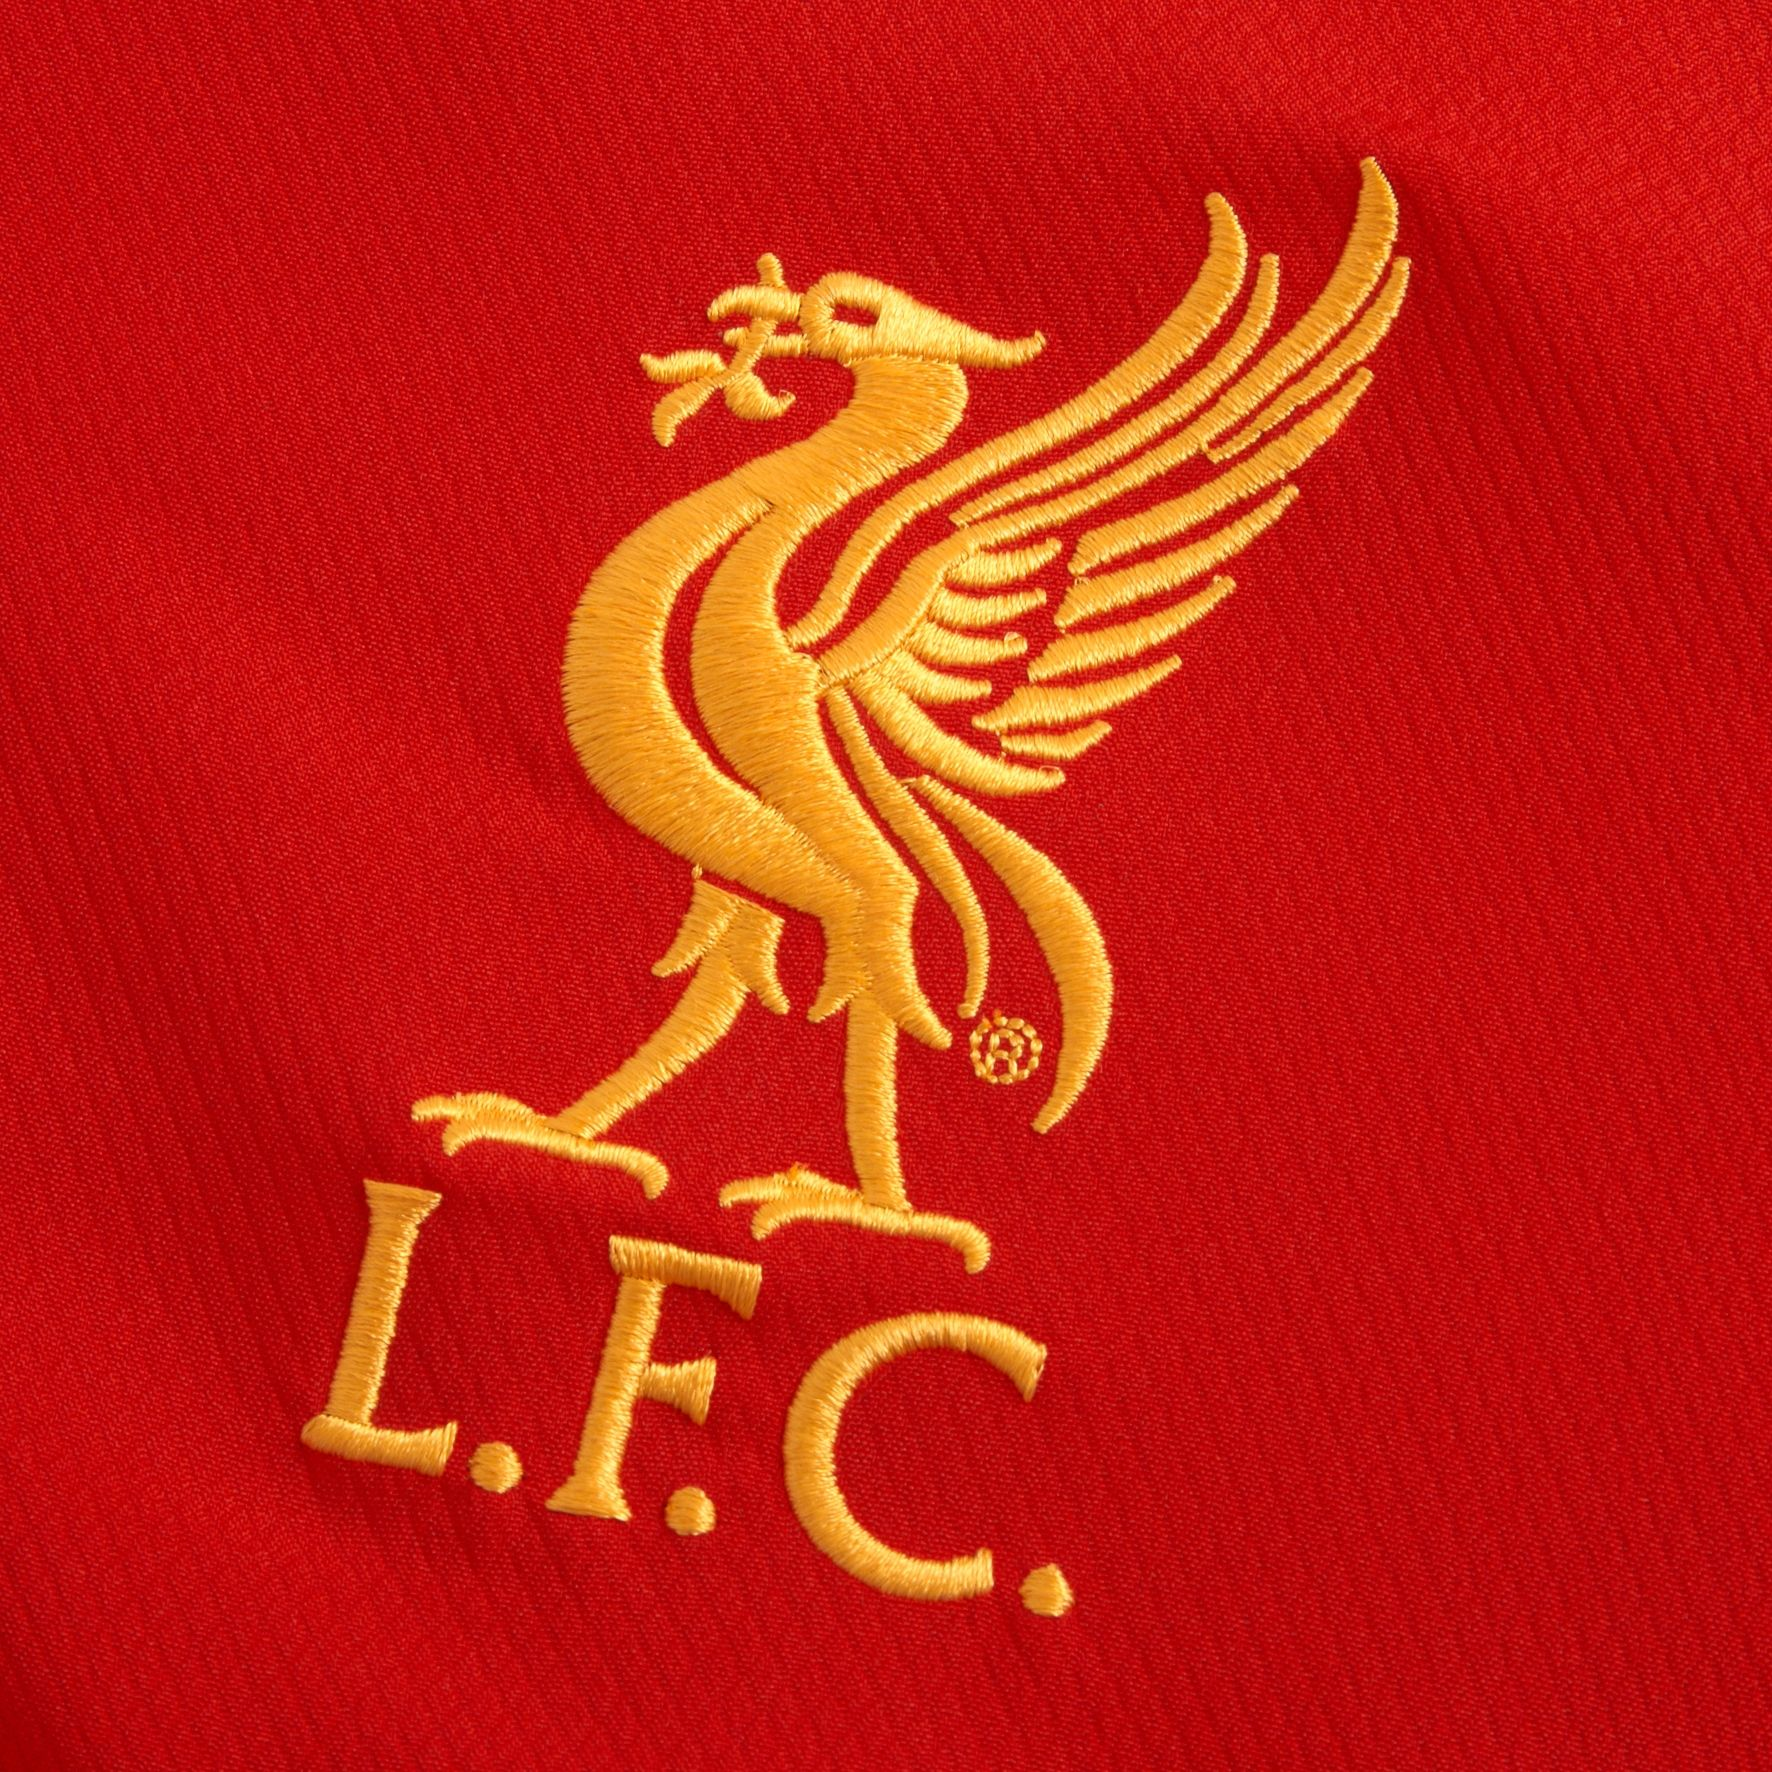 The Liver Bird Upon Our Chests! #LFC